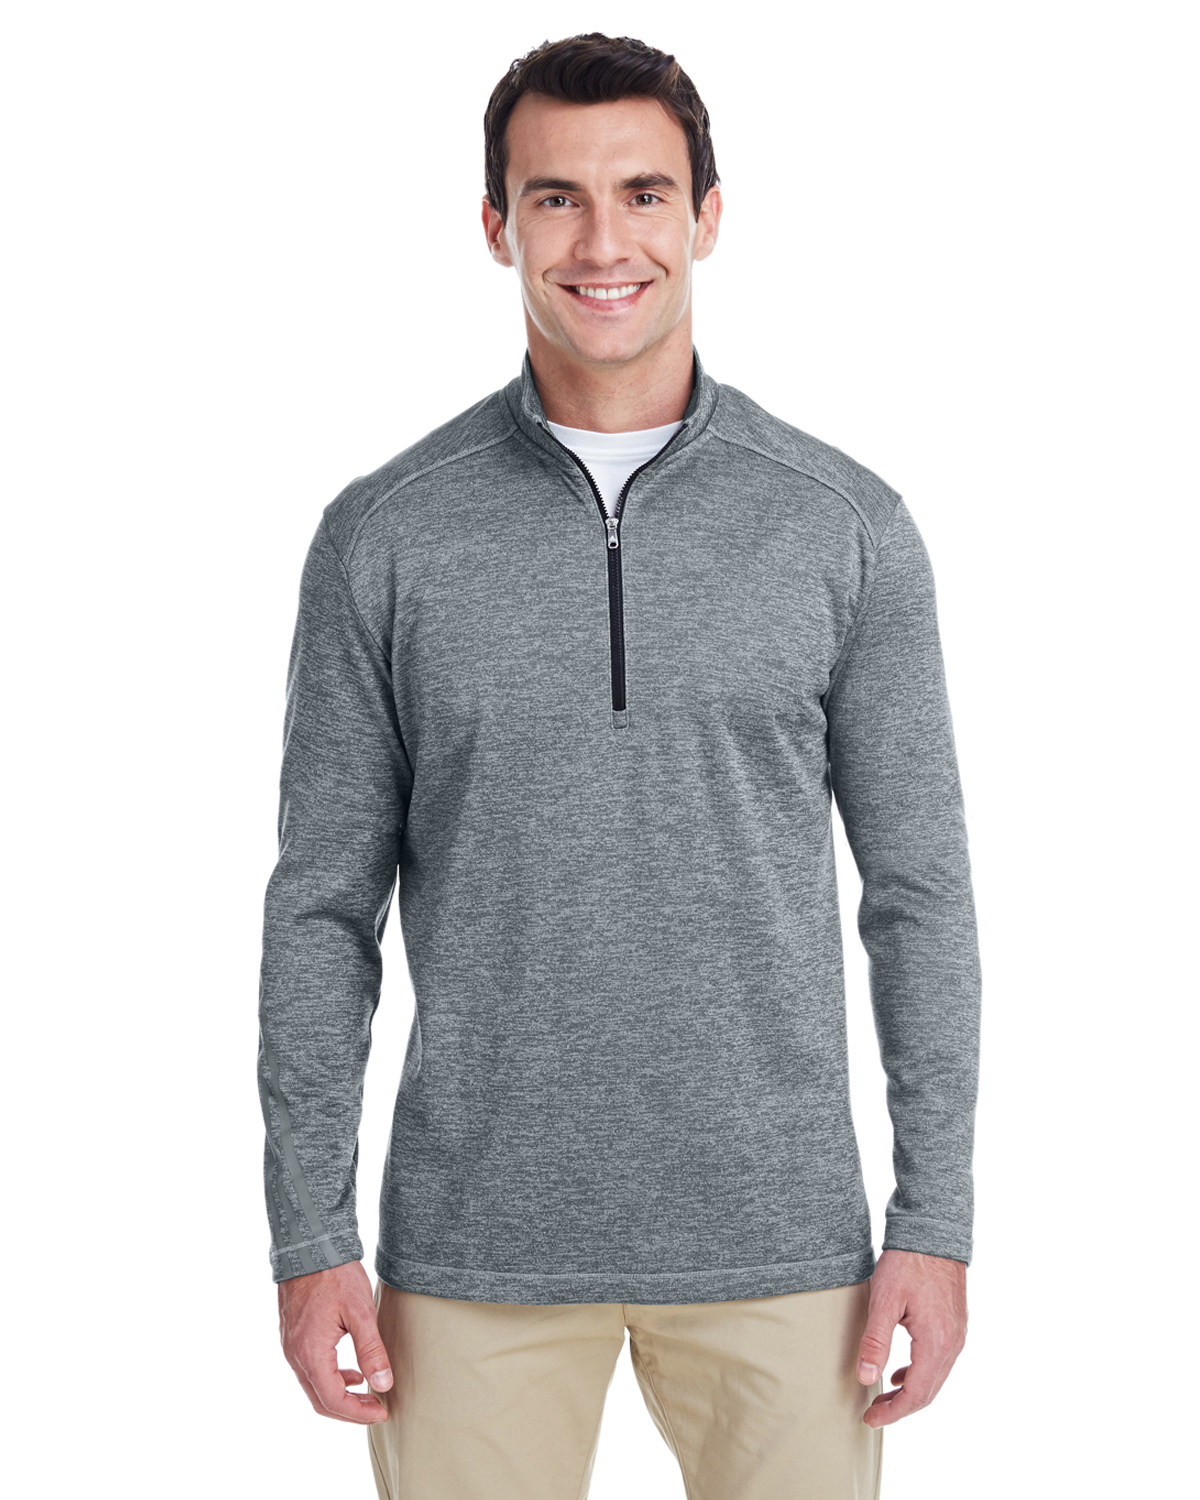 Men's 3-Stripes Heather Quarter-Zip